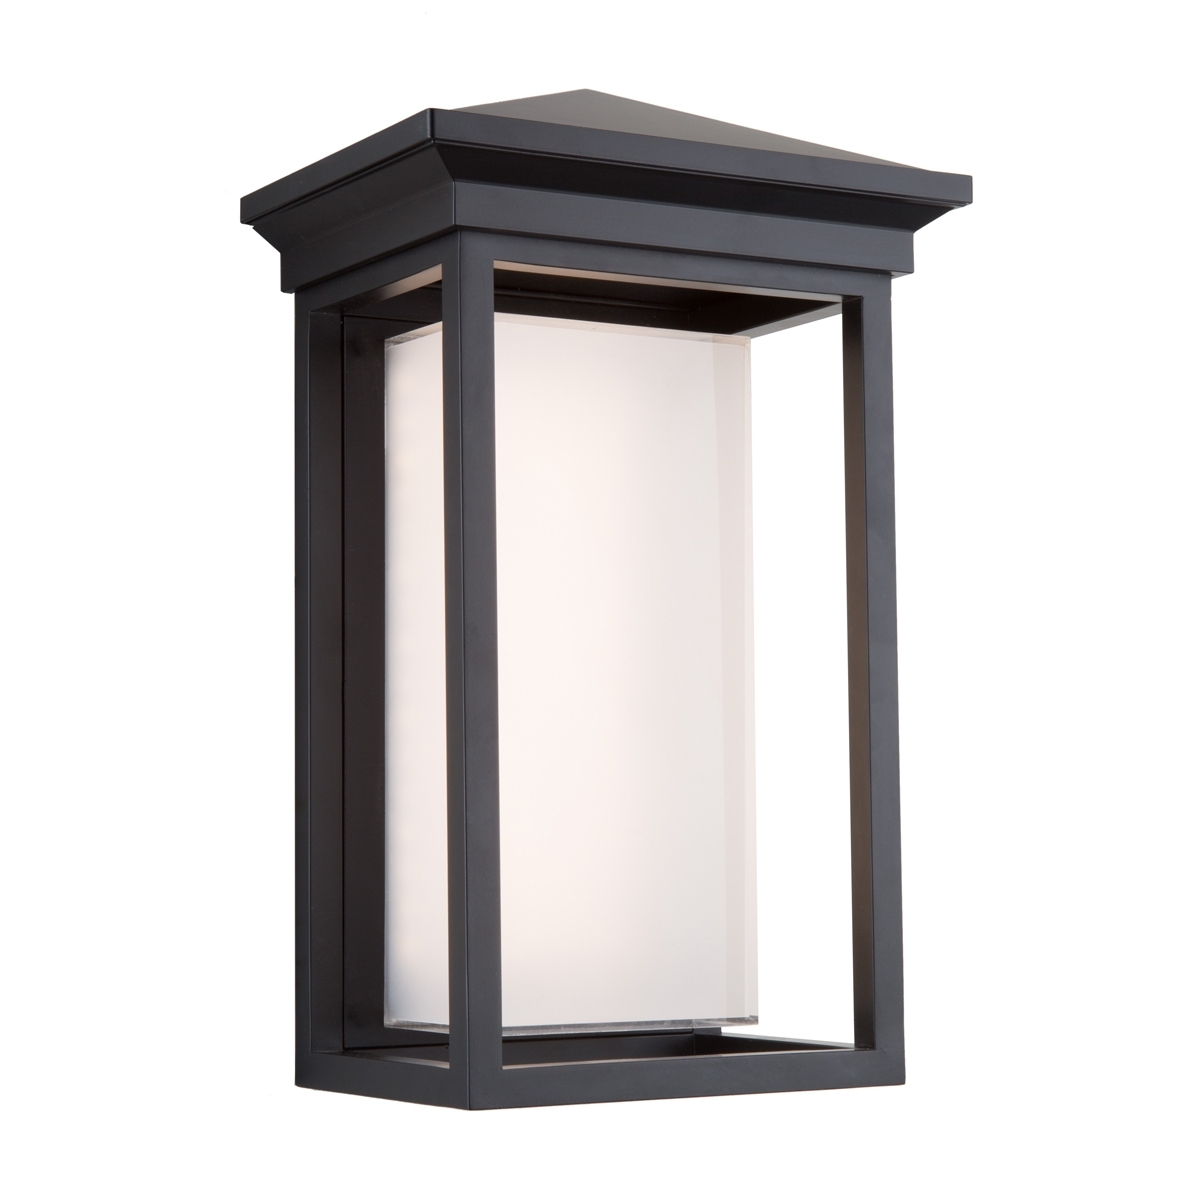 Most Recently Released Artcraft Lighting Ac9132Bk Outdoor Lanterns Black Cast Aluminum Inside Black Outdoor Lanterns (View 14 of 20)